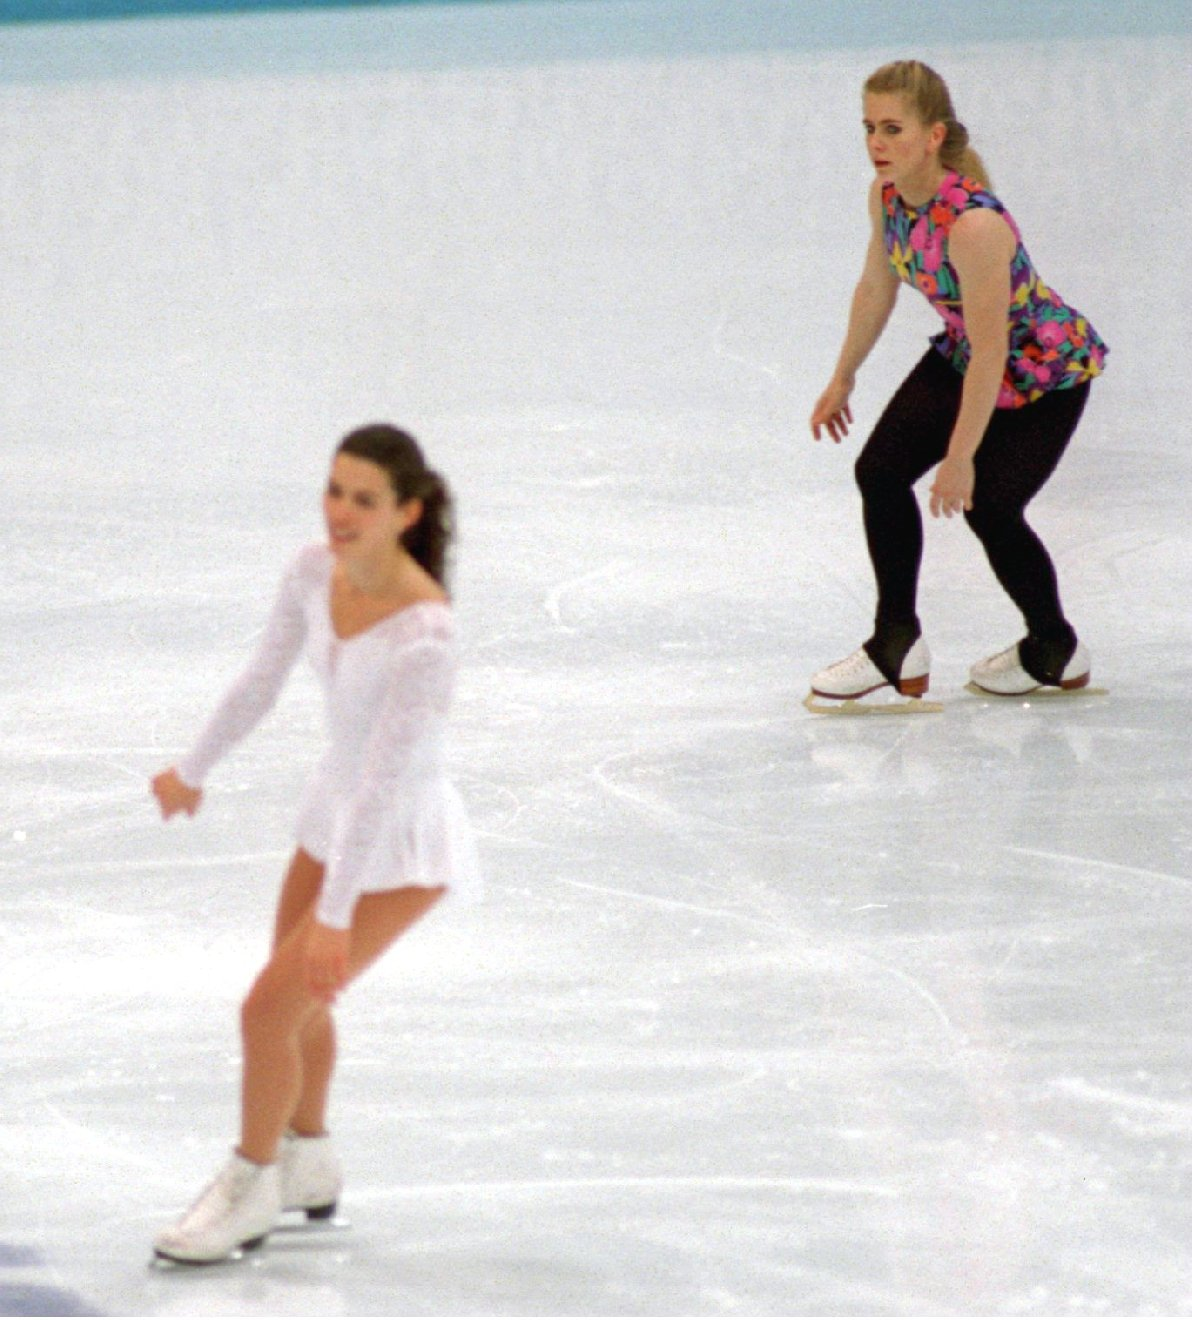 Nancy, Tonya and Tabloid Culture, 20 Years Later